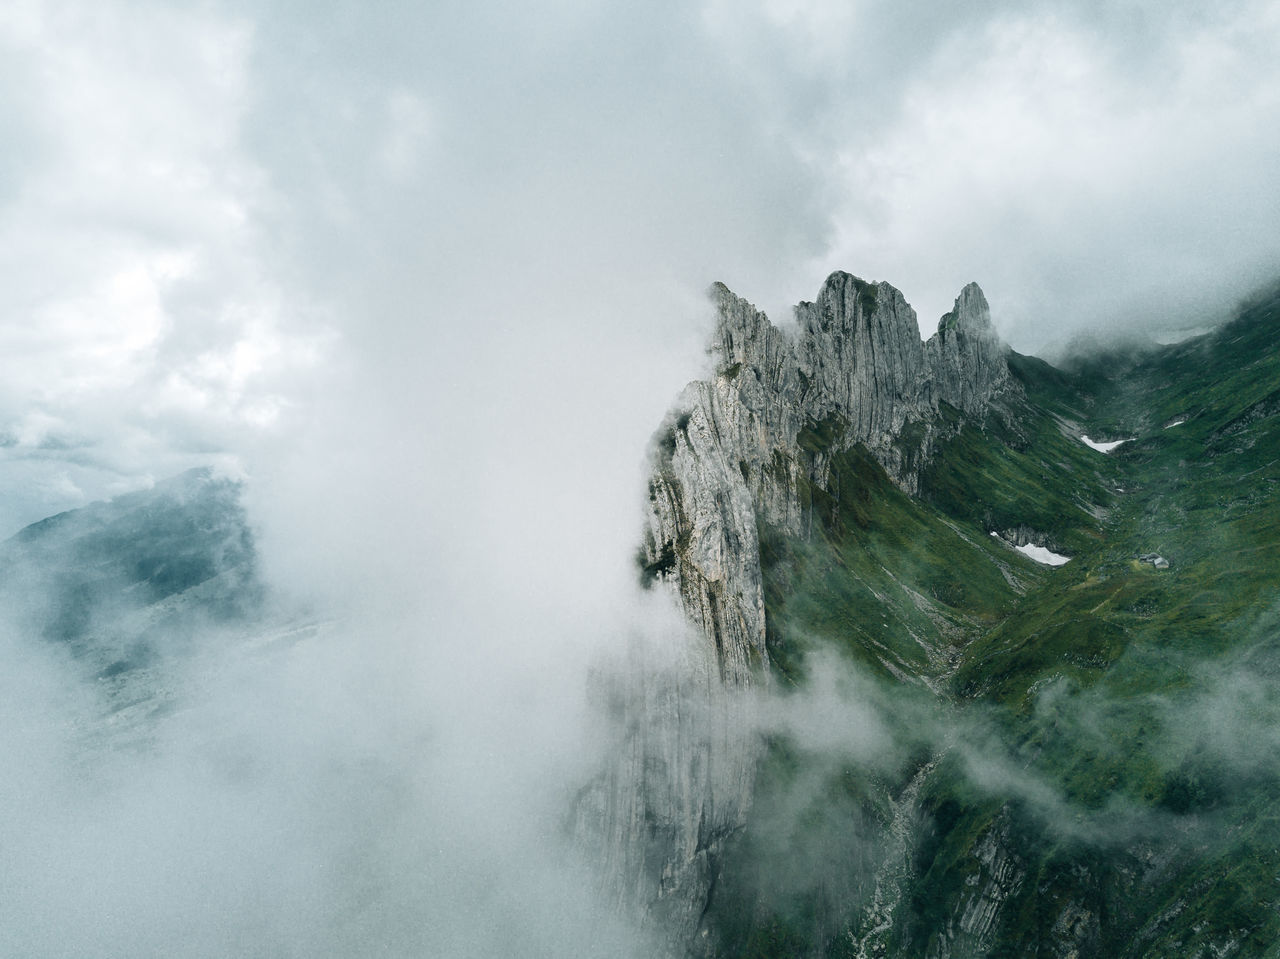 Switzerland Mountain range clouded with fog Beauty In Nature Day Fog Landscape Mountain Mountain Range Nature No People Outdoors Scenics Sky Weather